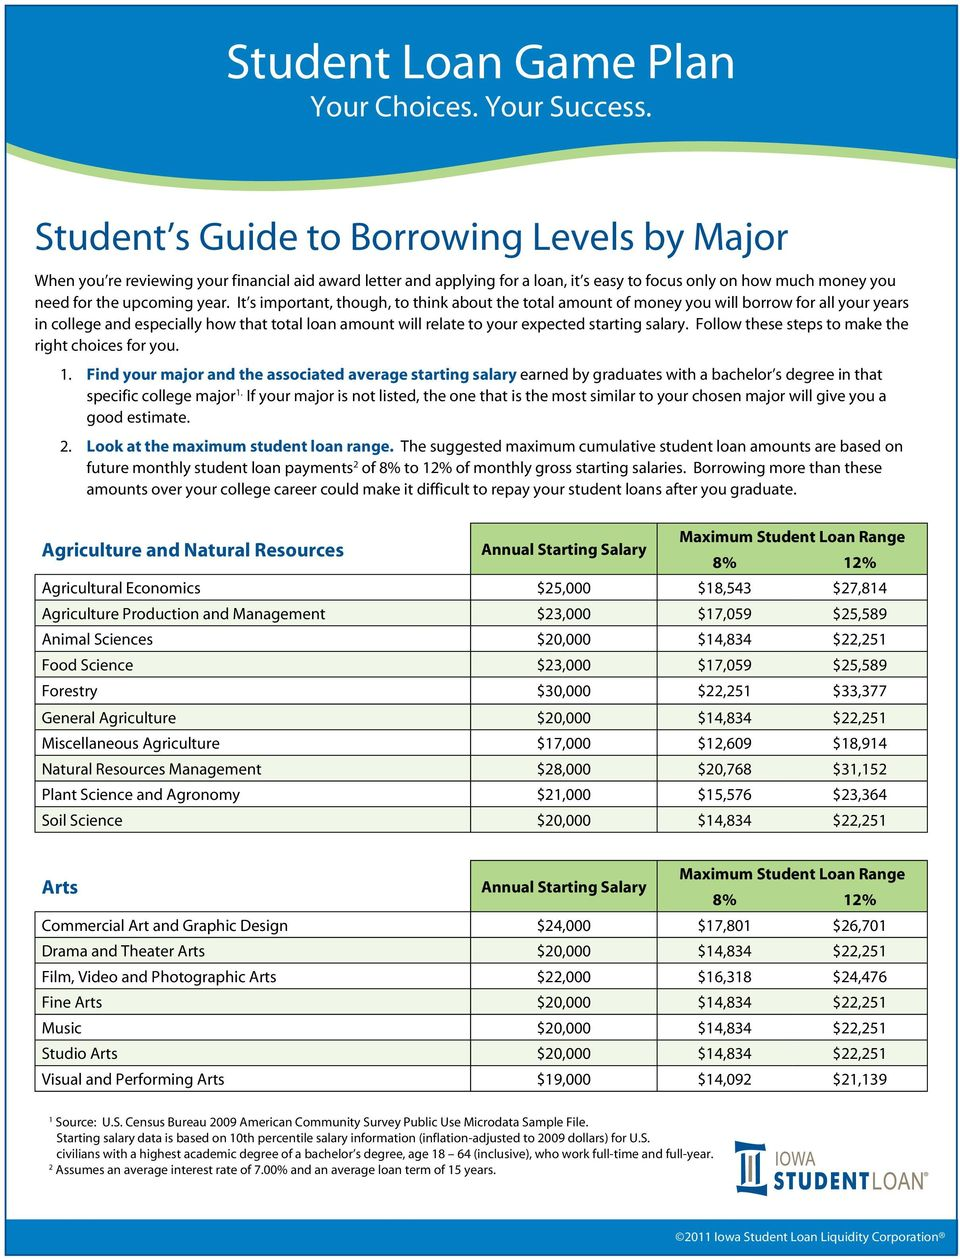 It s important, though, to think about the total amount of money you will borrow for all your years in college and especially how that total loan amount will relate to your expected starting salary.